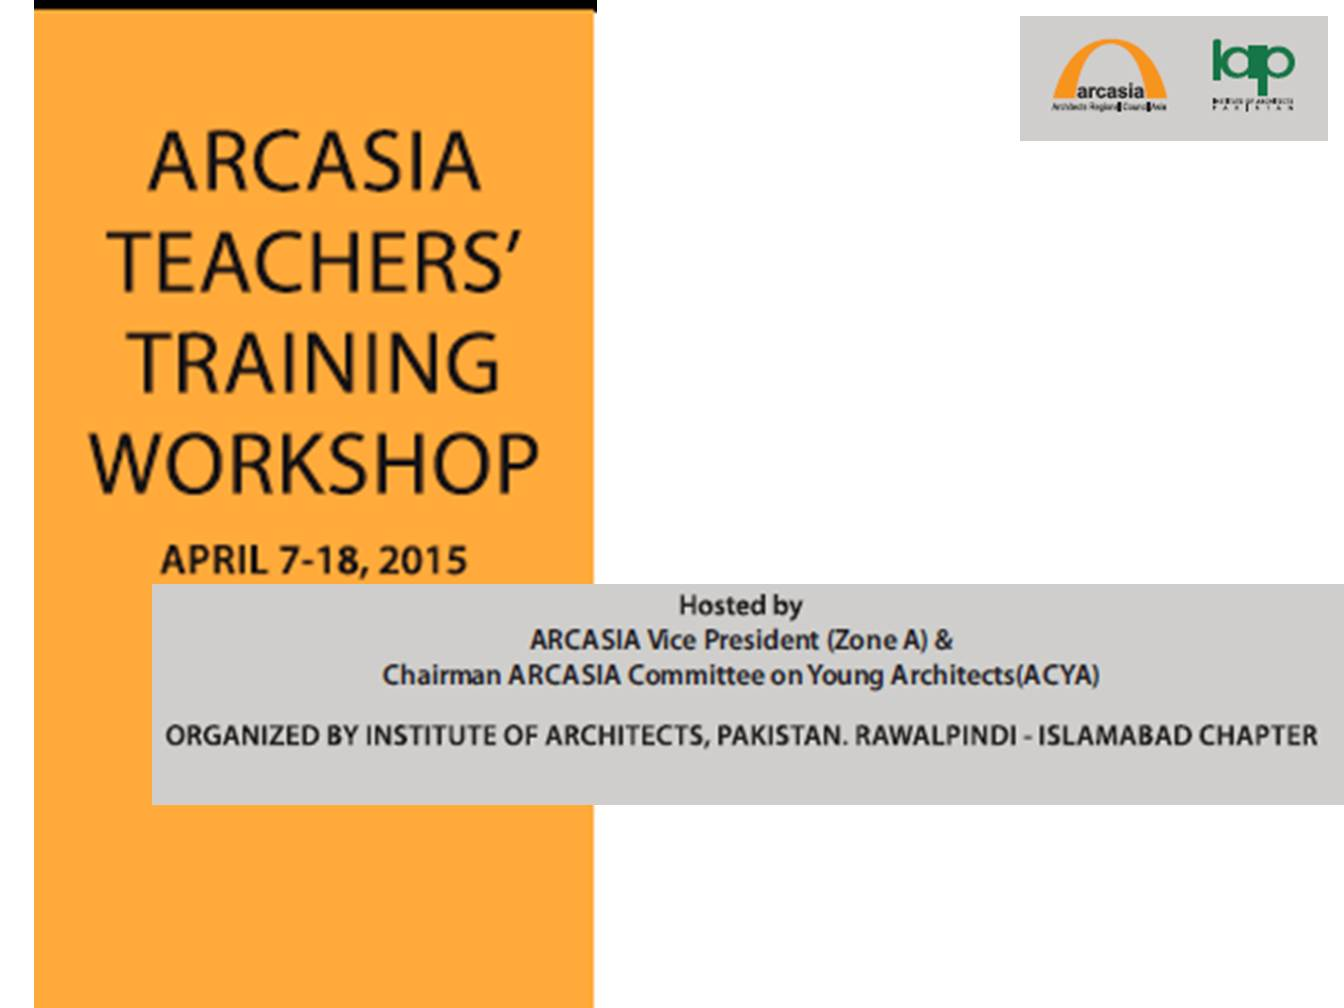 ARCASIA Teachers' Training Workshop